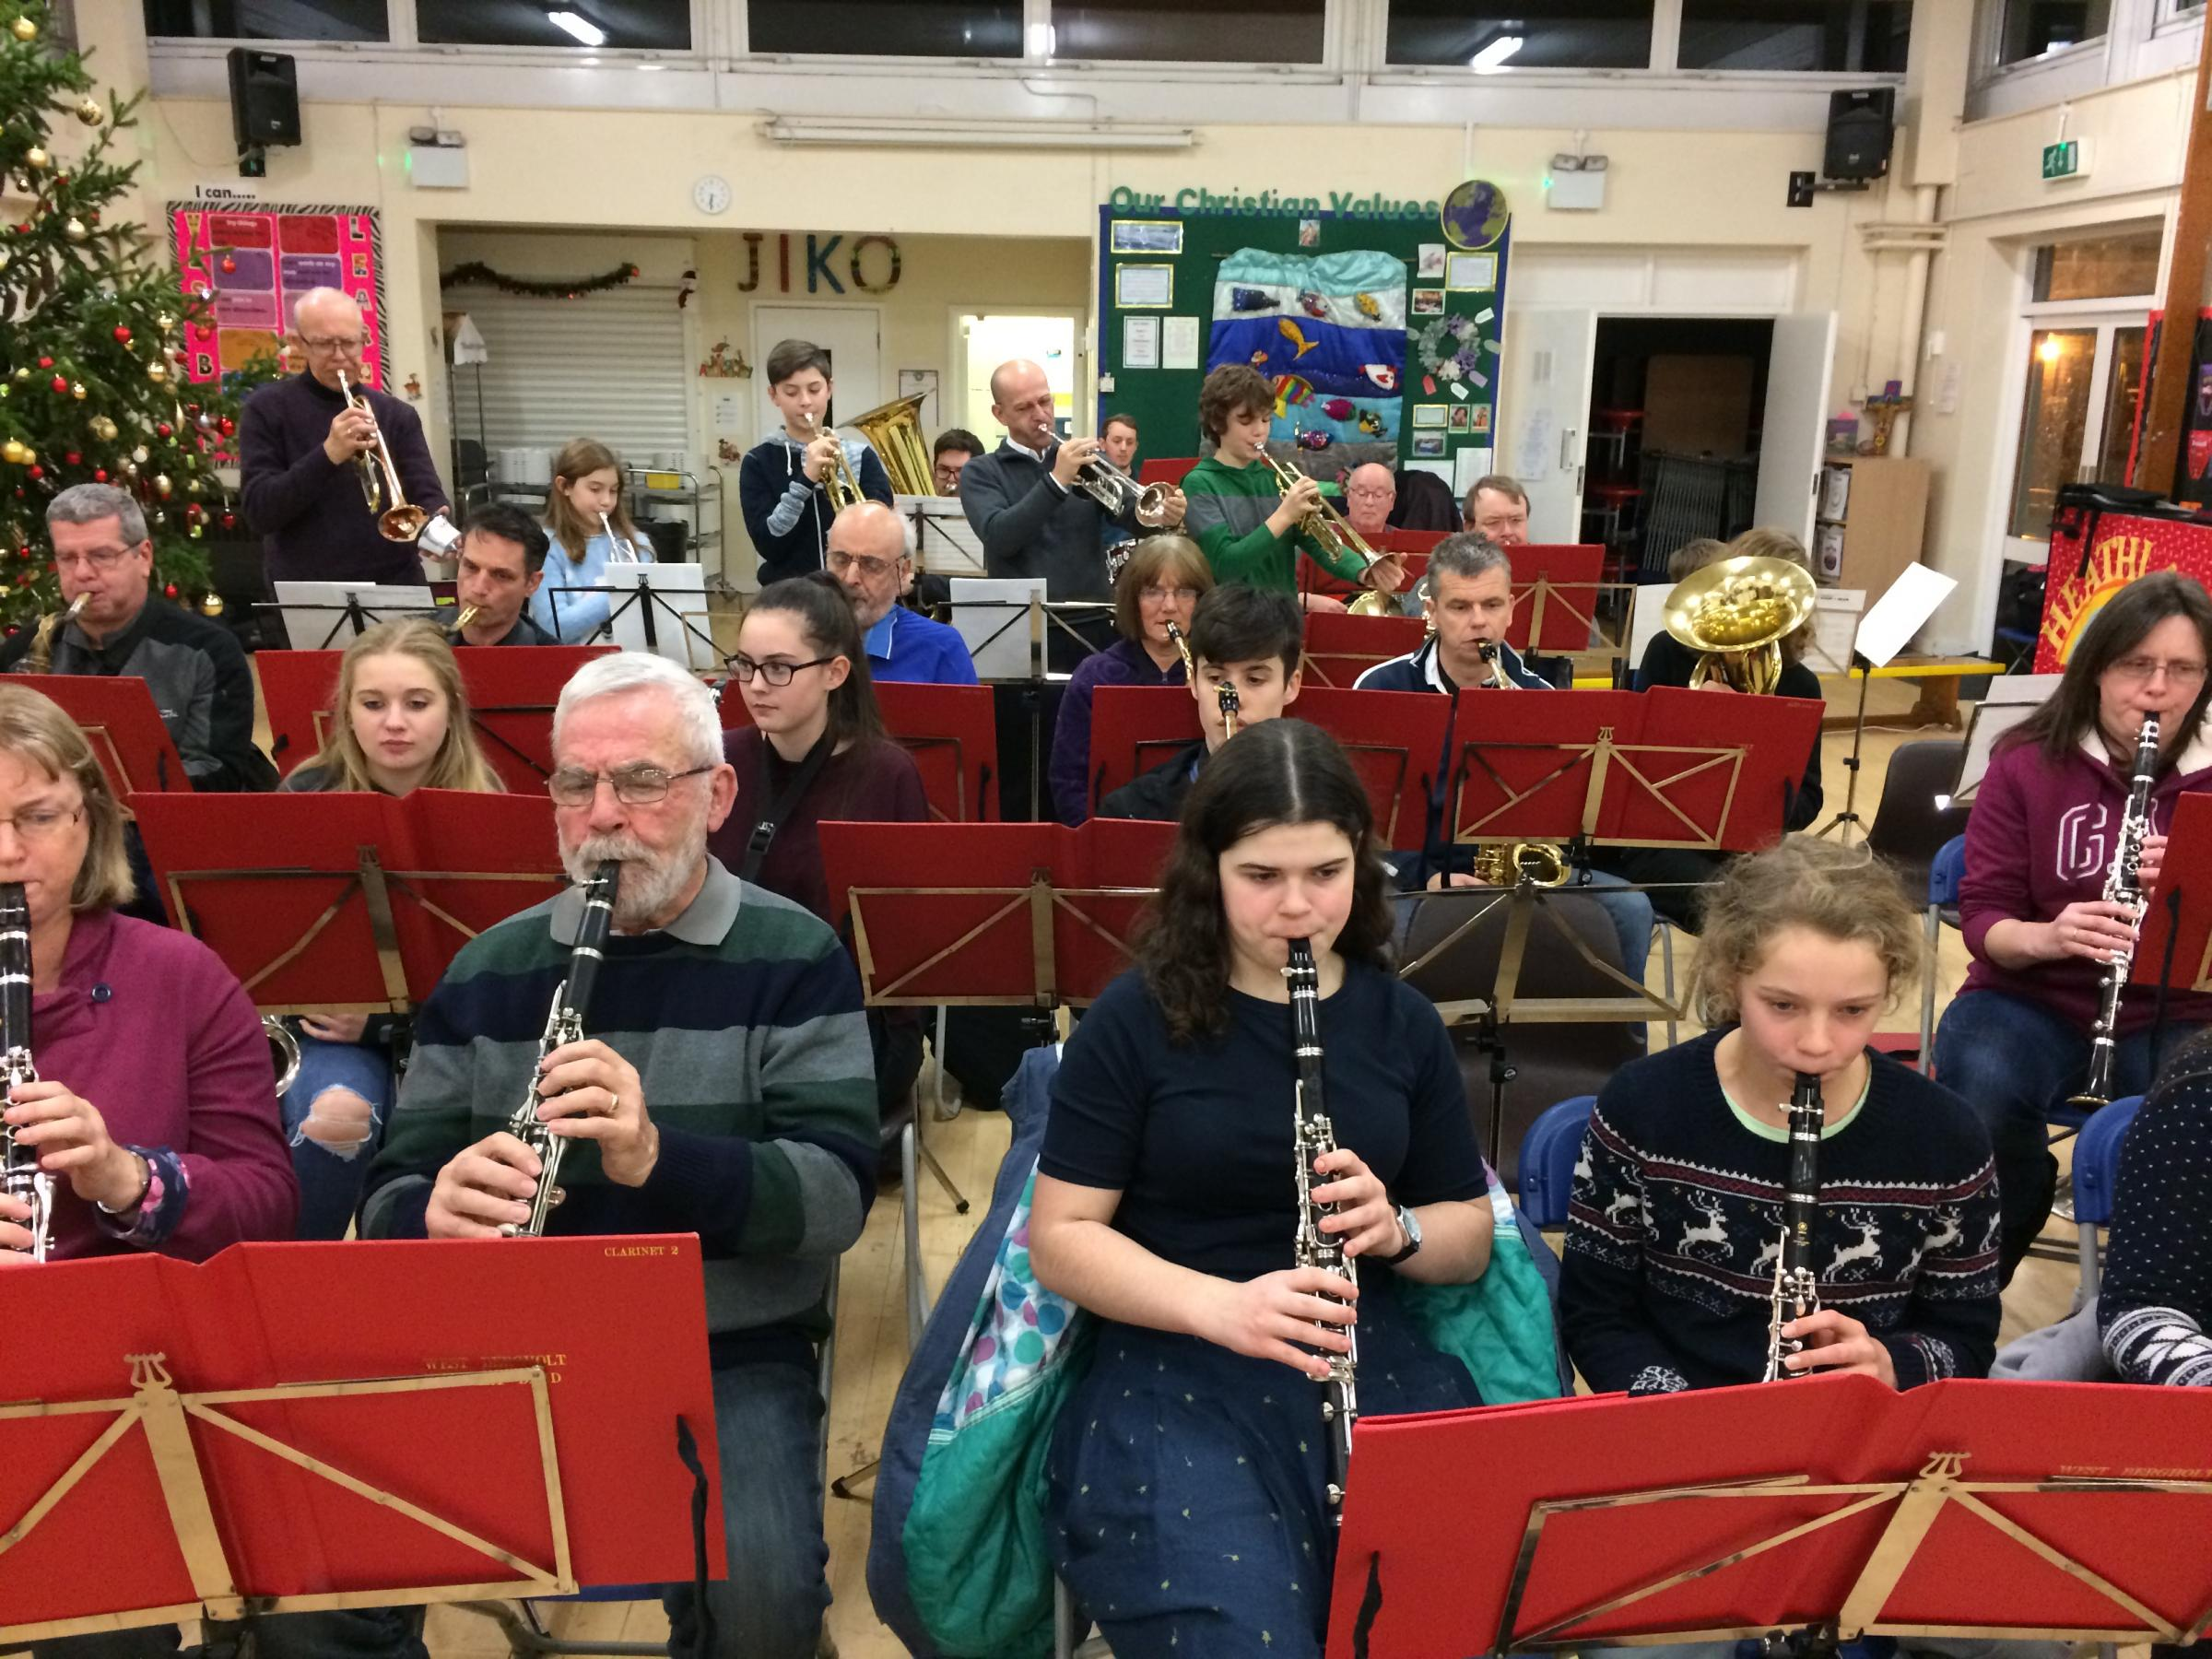 Free Open Rehearsal for Brass & Woodwind Musicians